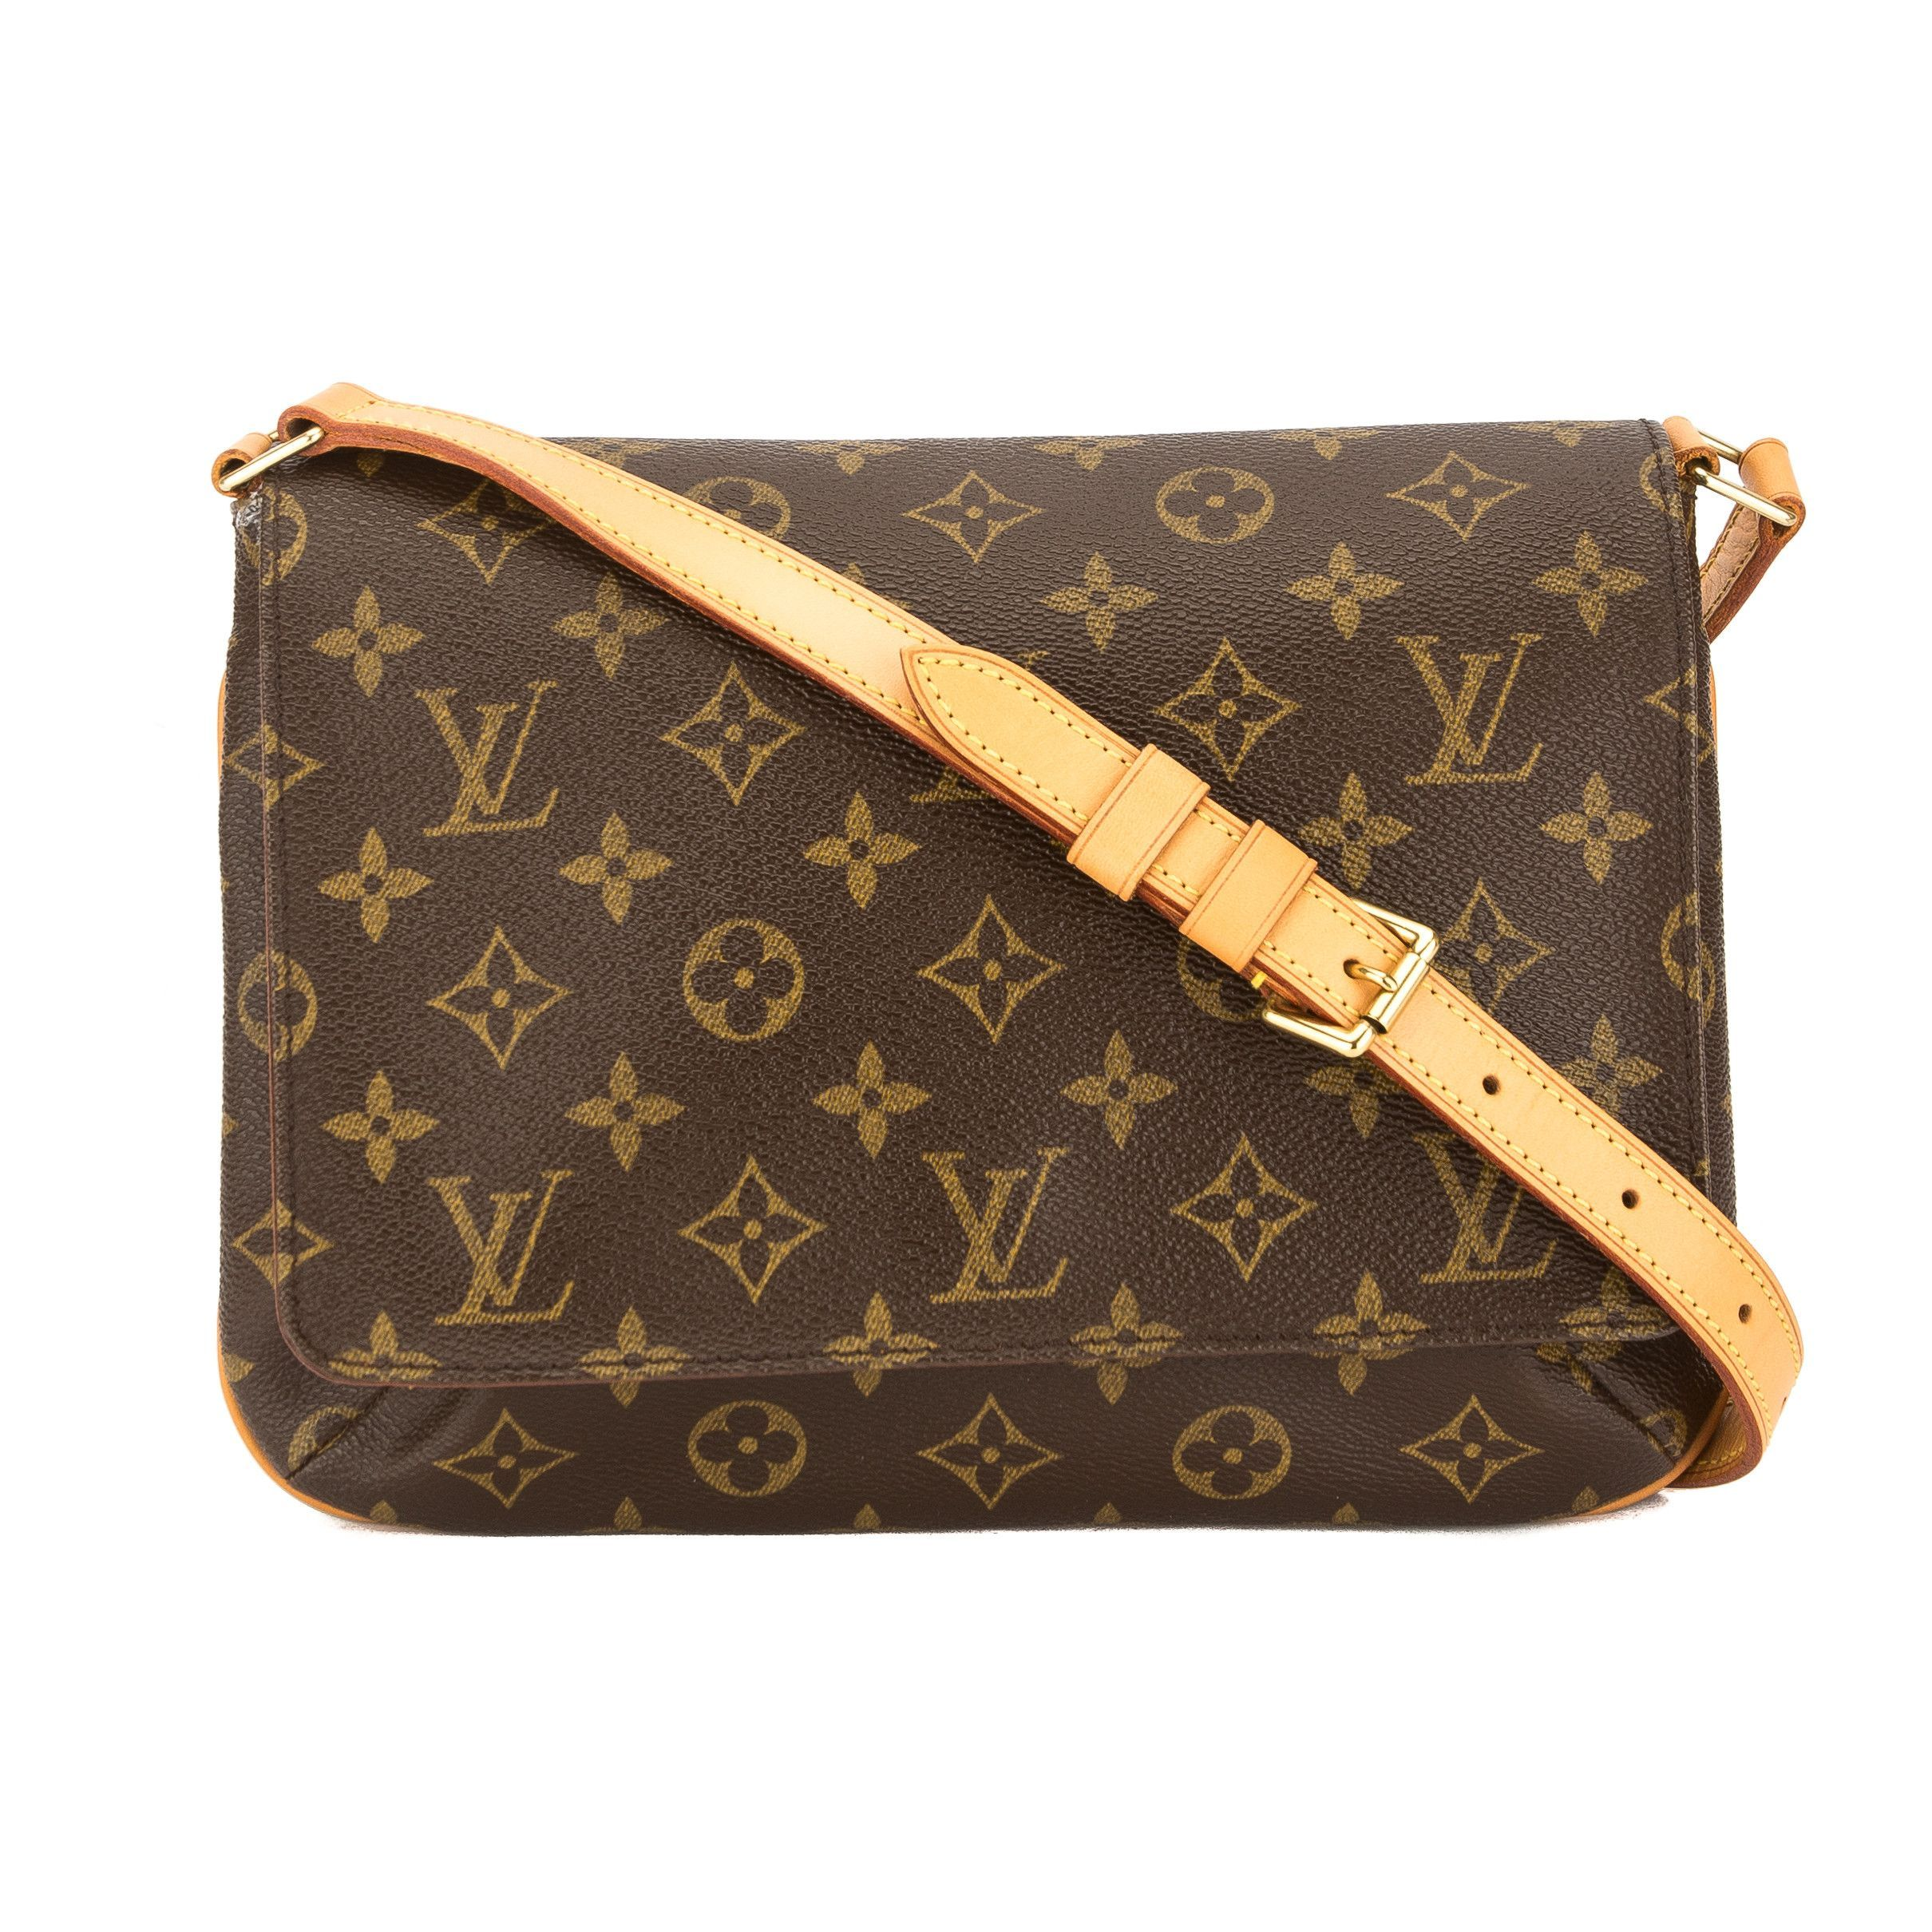 17e2b12d109e Louis Vuitton Monogram Canvas Musette Tango Bag (Pre Owned ...